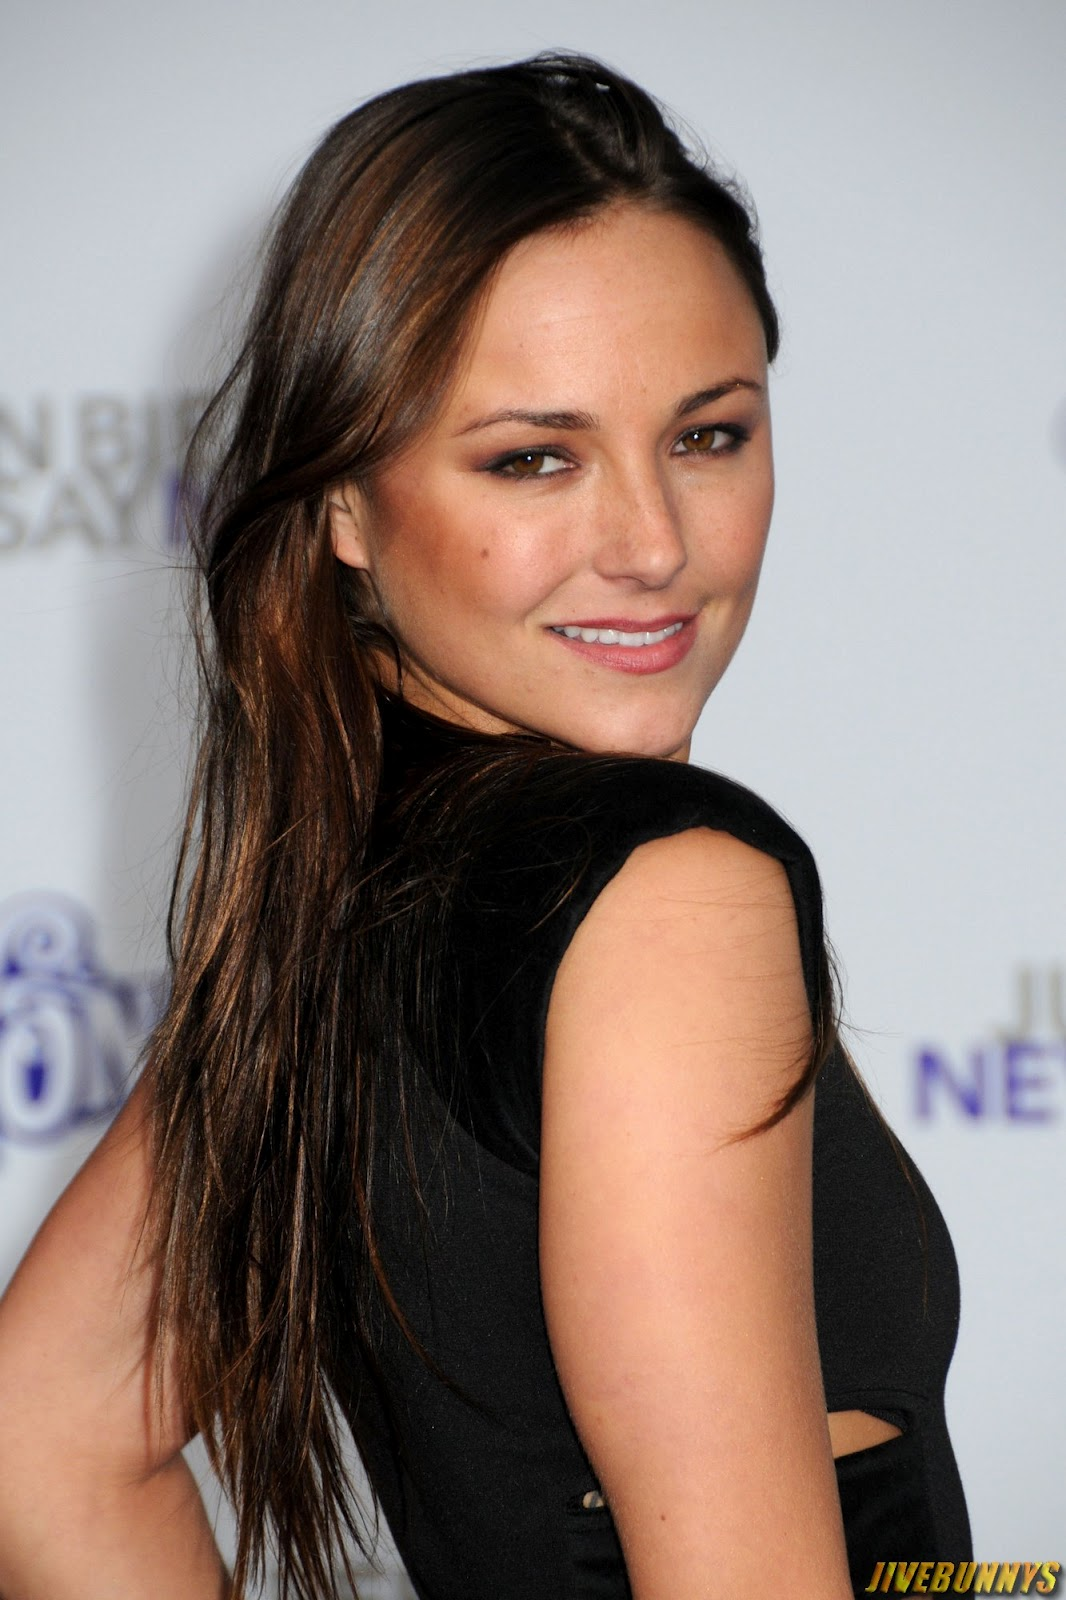 Pussy Briana Evigan naked (92 foto and video), Topless, Paparazzi, Instagram, cleavage 2006